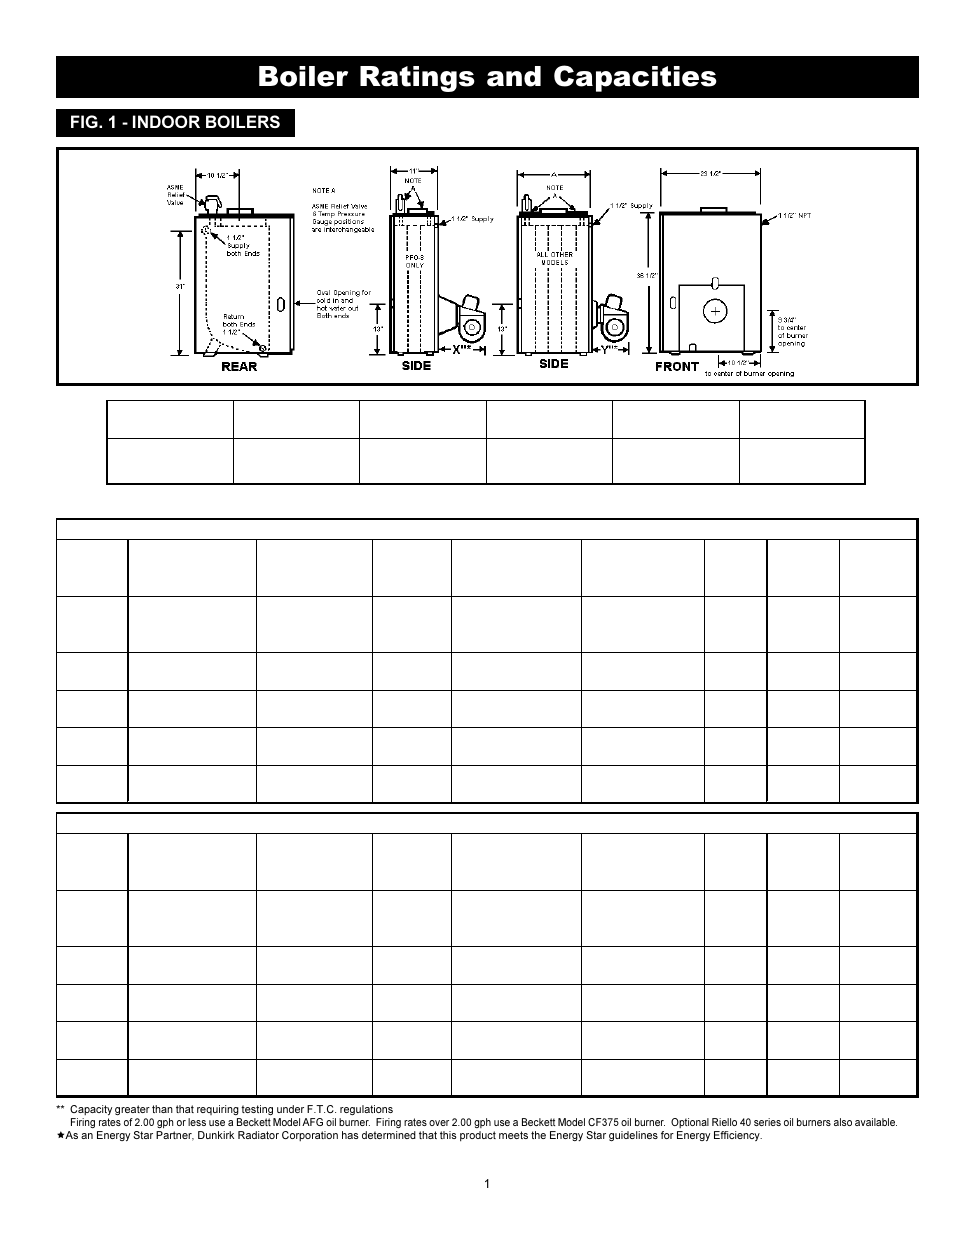 Boiler ratings and capacities, Indoor oil-fired hot water